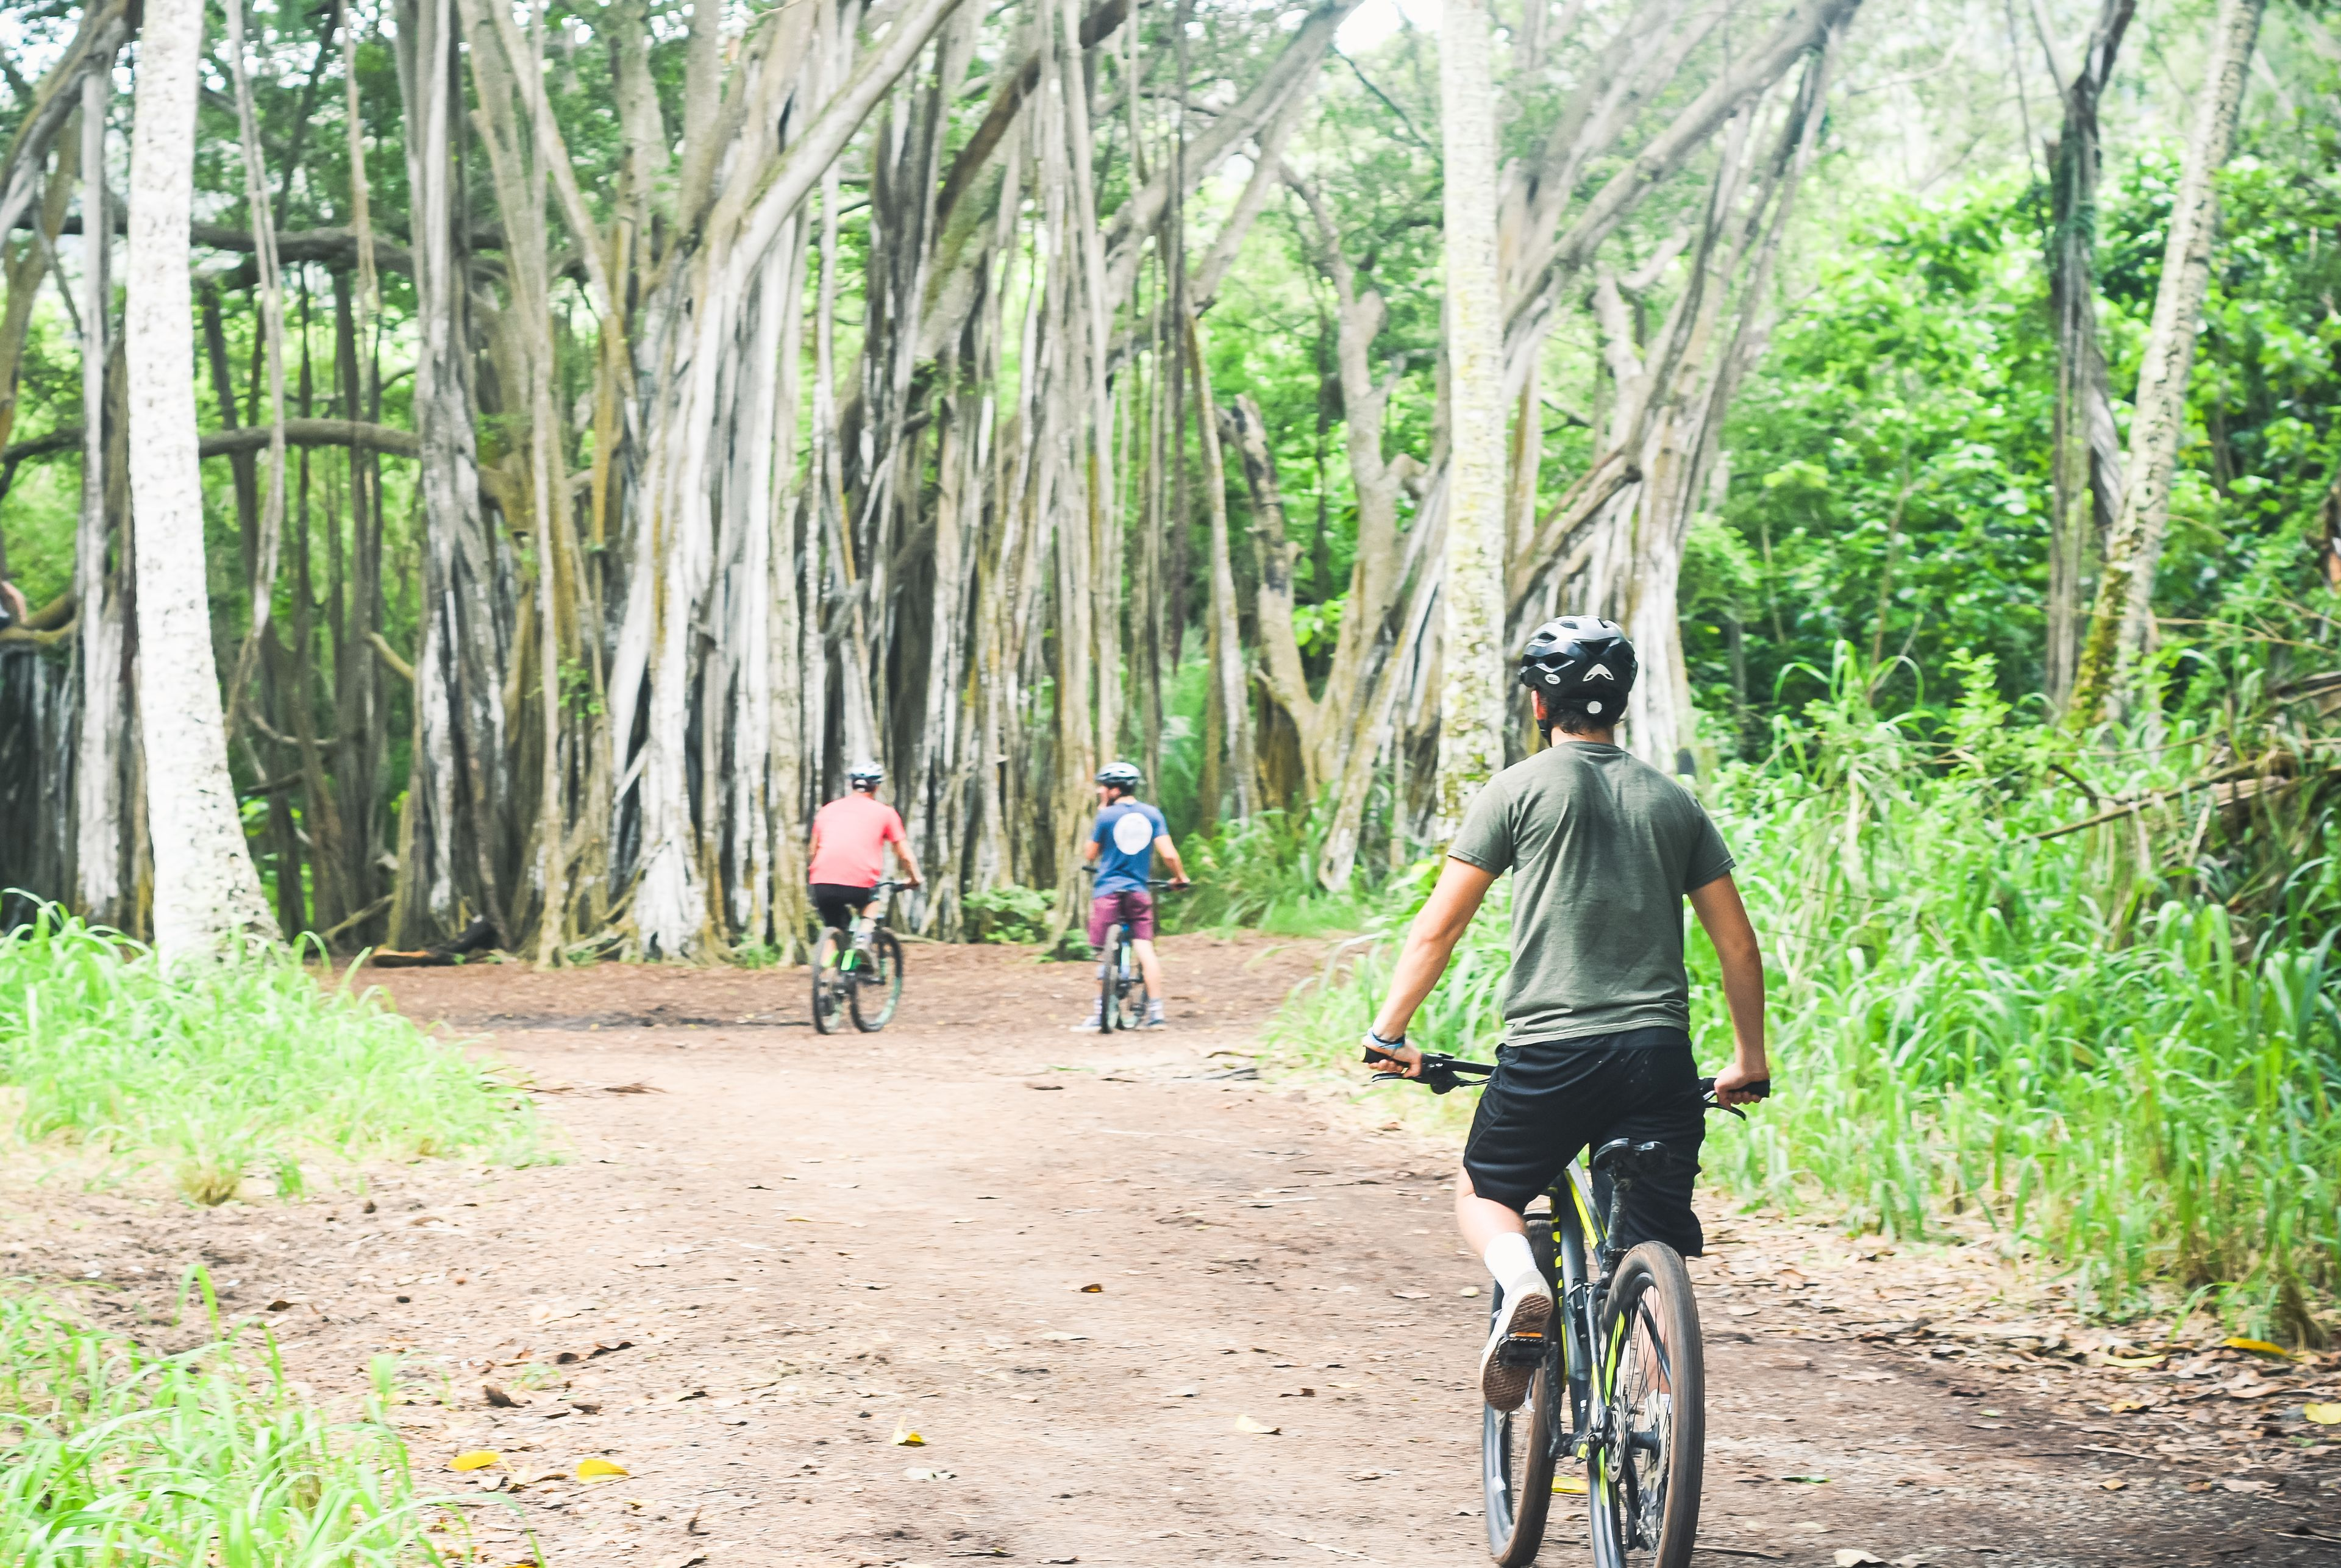 Bicycling group on a path in the woods on Oahu